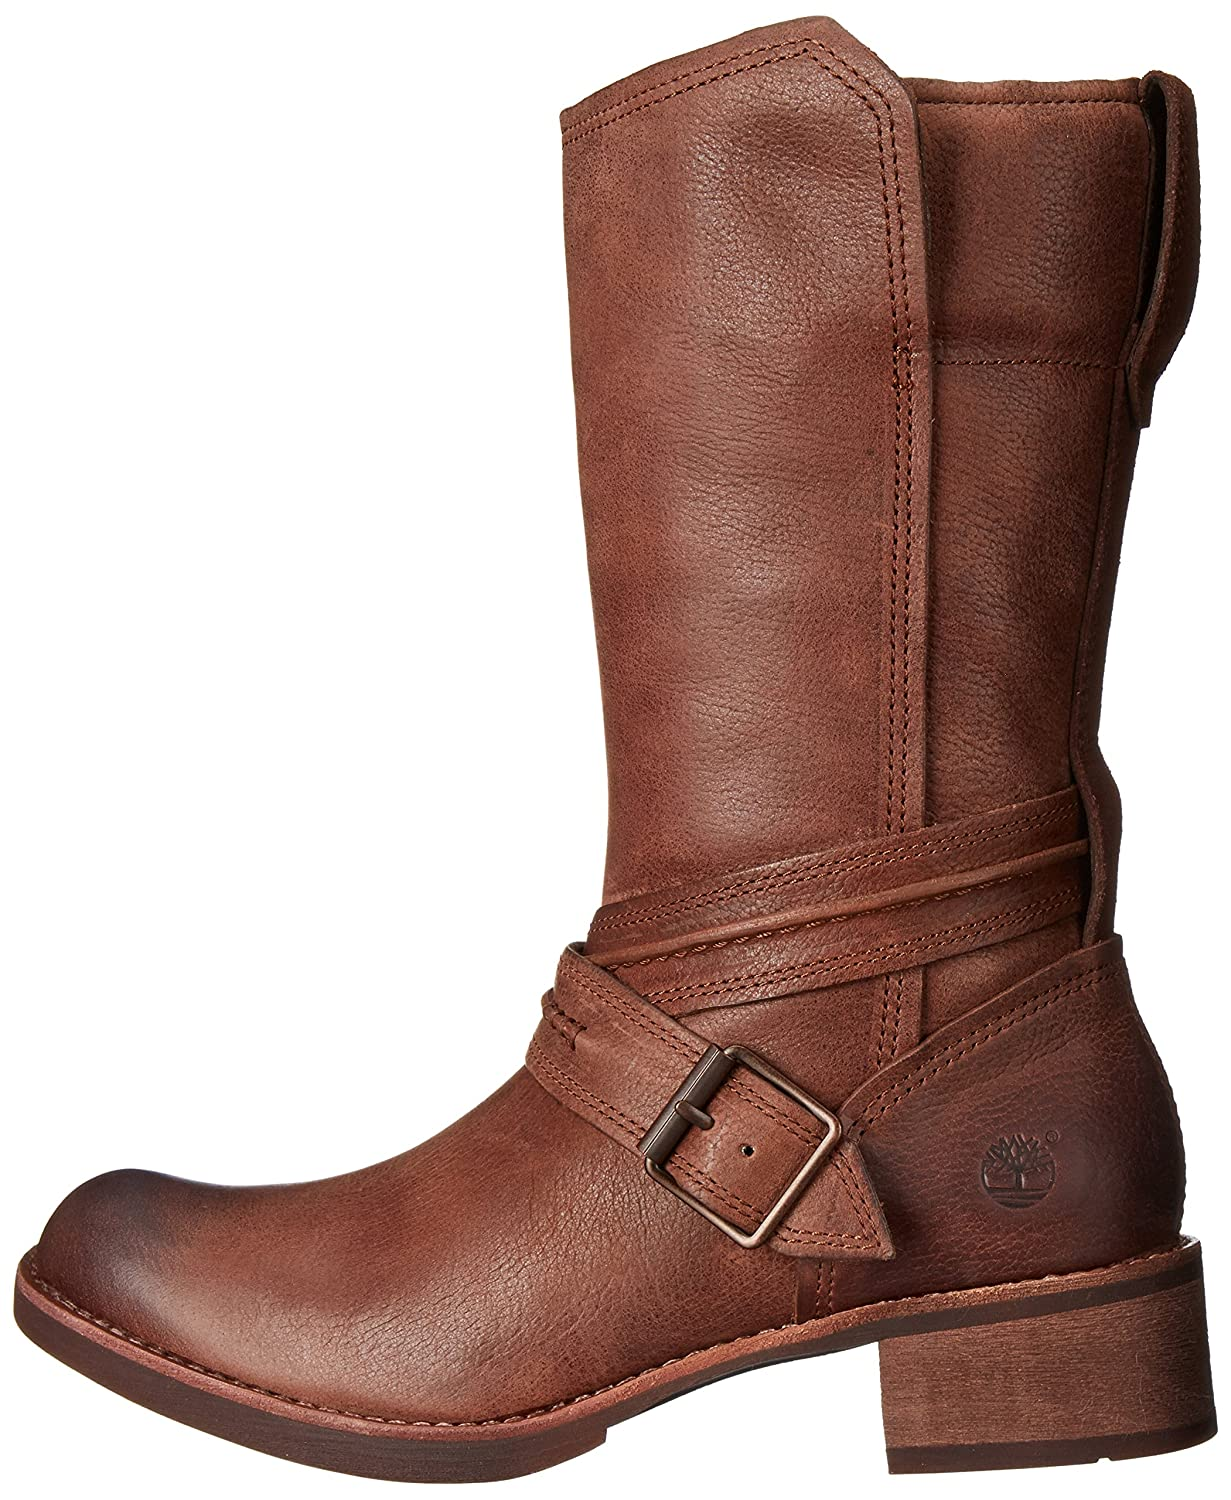 71b56c43785 Timberland Women s Whittemore Mid Side-Zip Boot Dark Brown Woodlands 8.5  B(M) US  Buy Online at Low Prices in India - Amazon.in